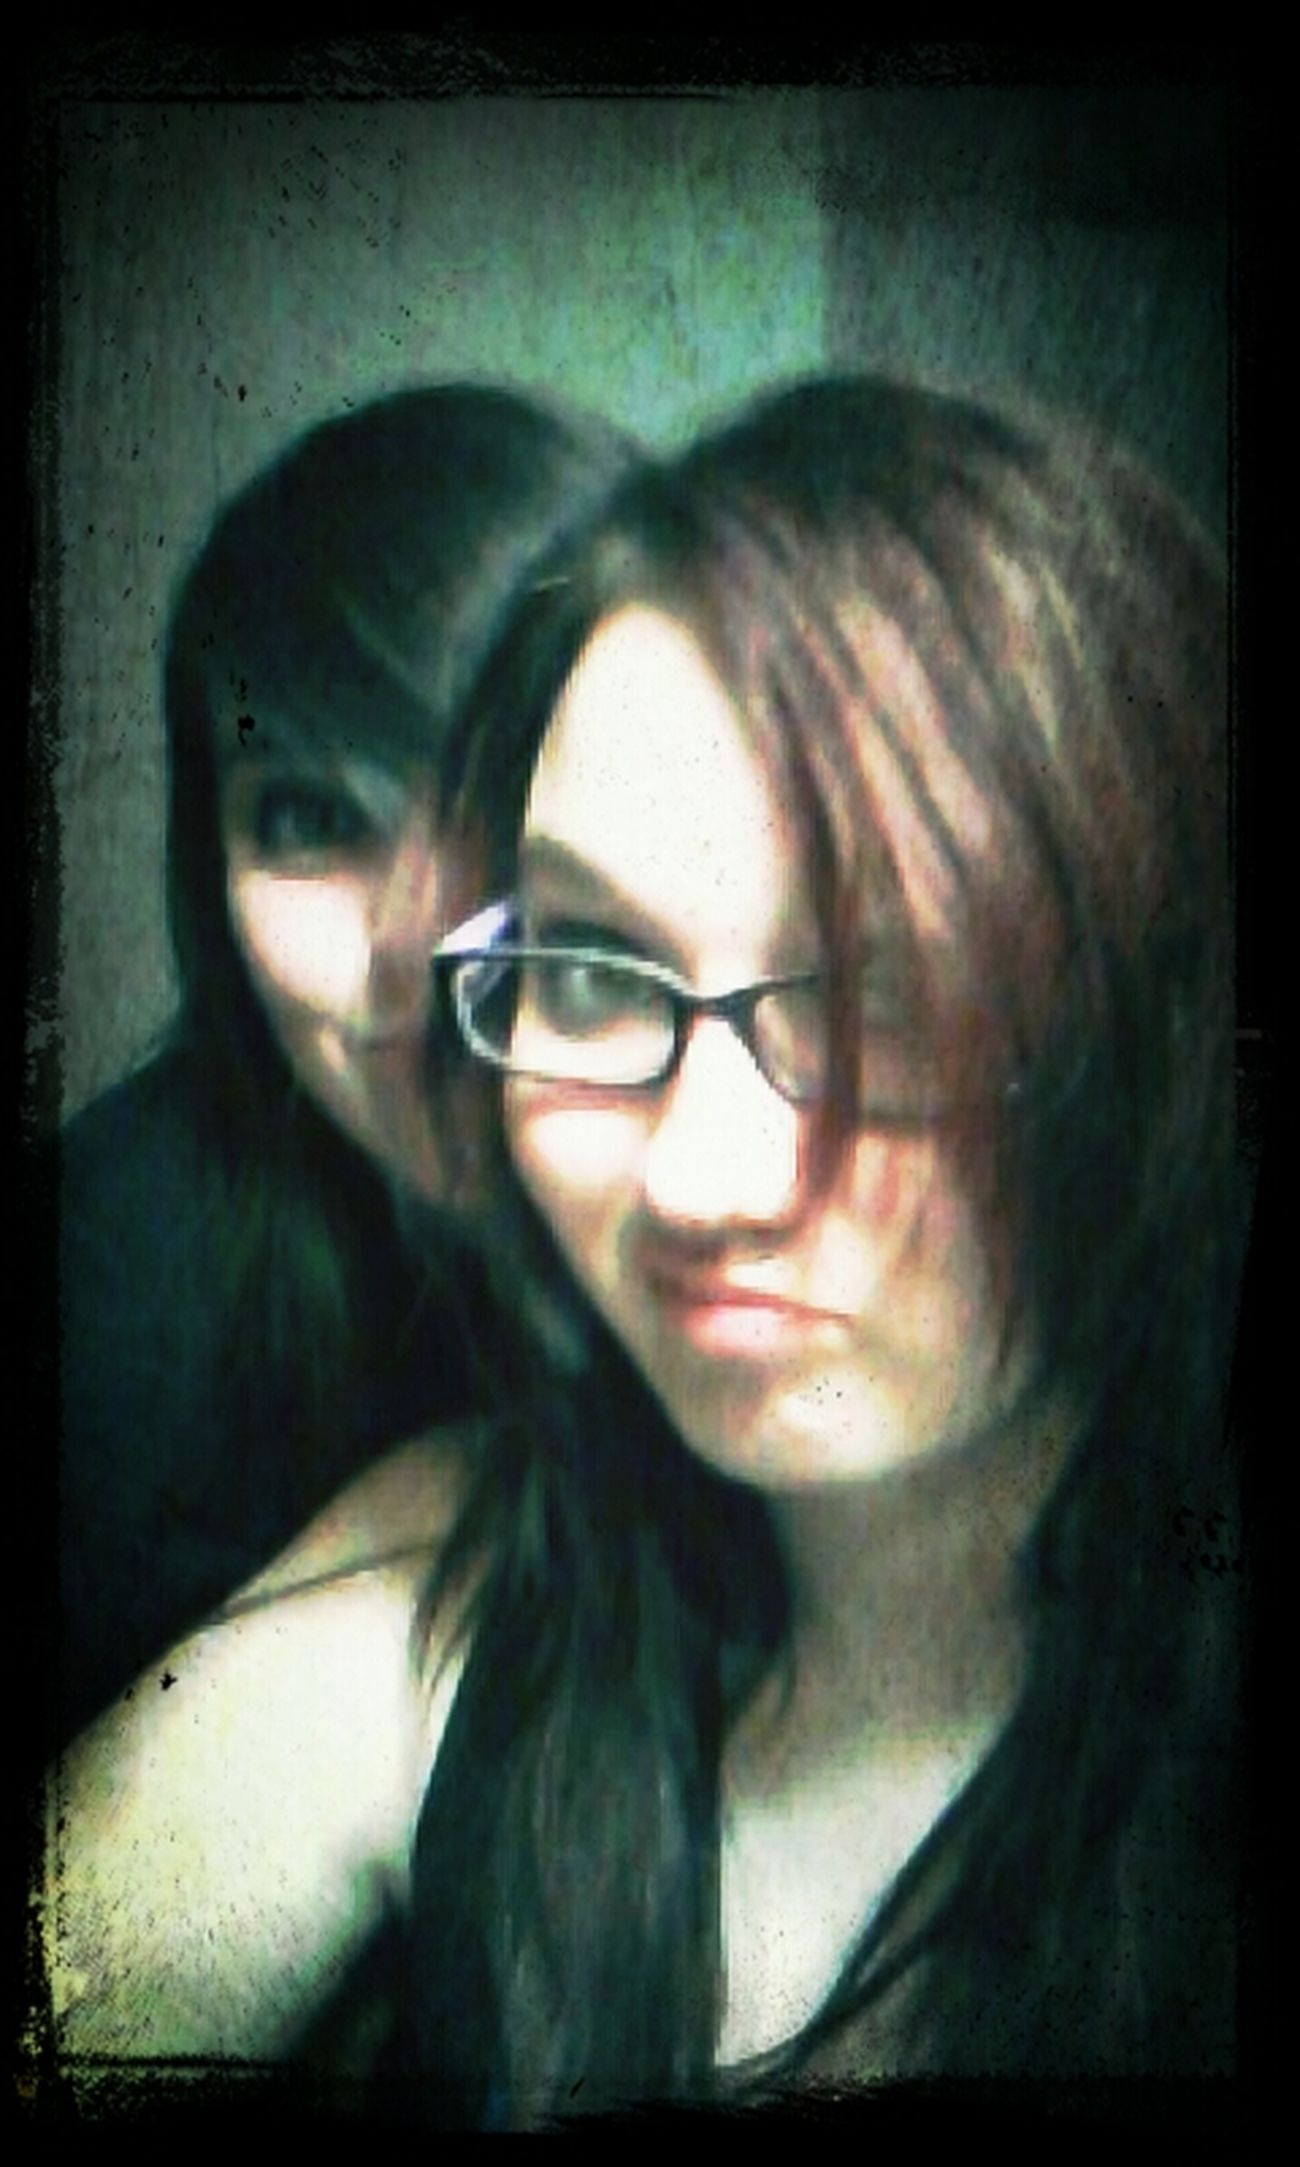 just hanging out with my bff Beautiful Hanging Out My Bff <3 Taking Photos